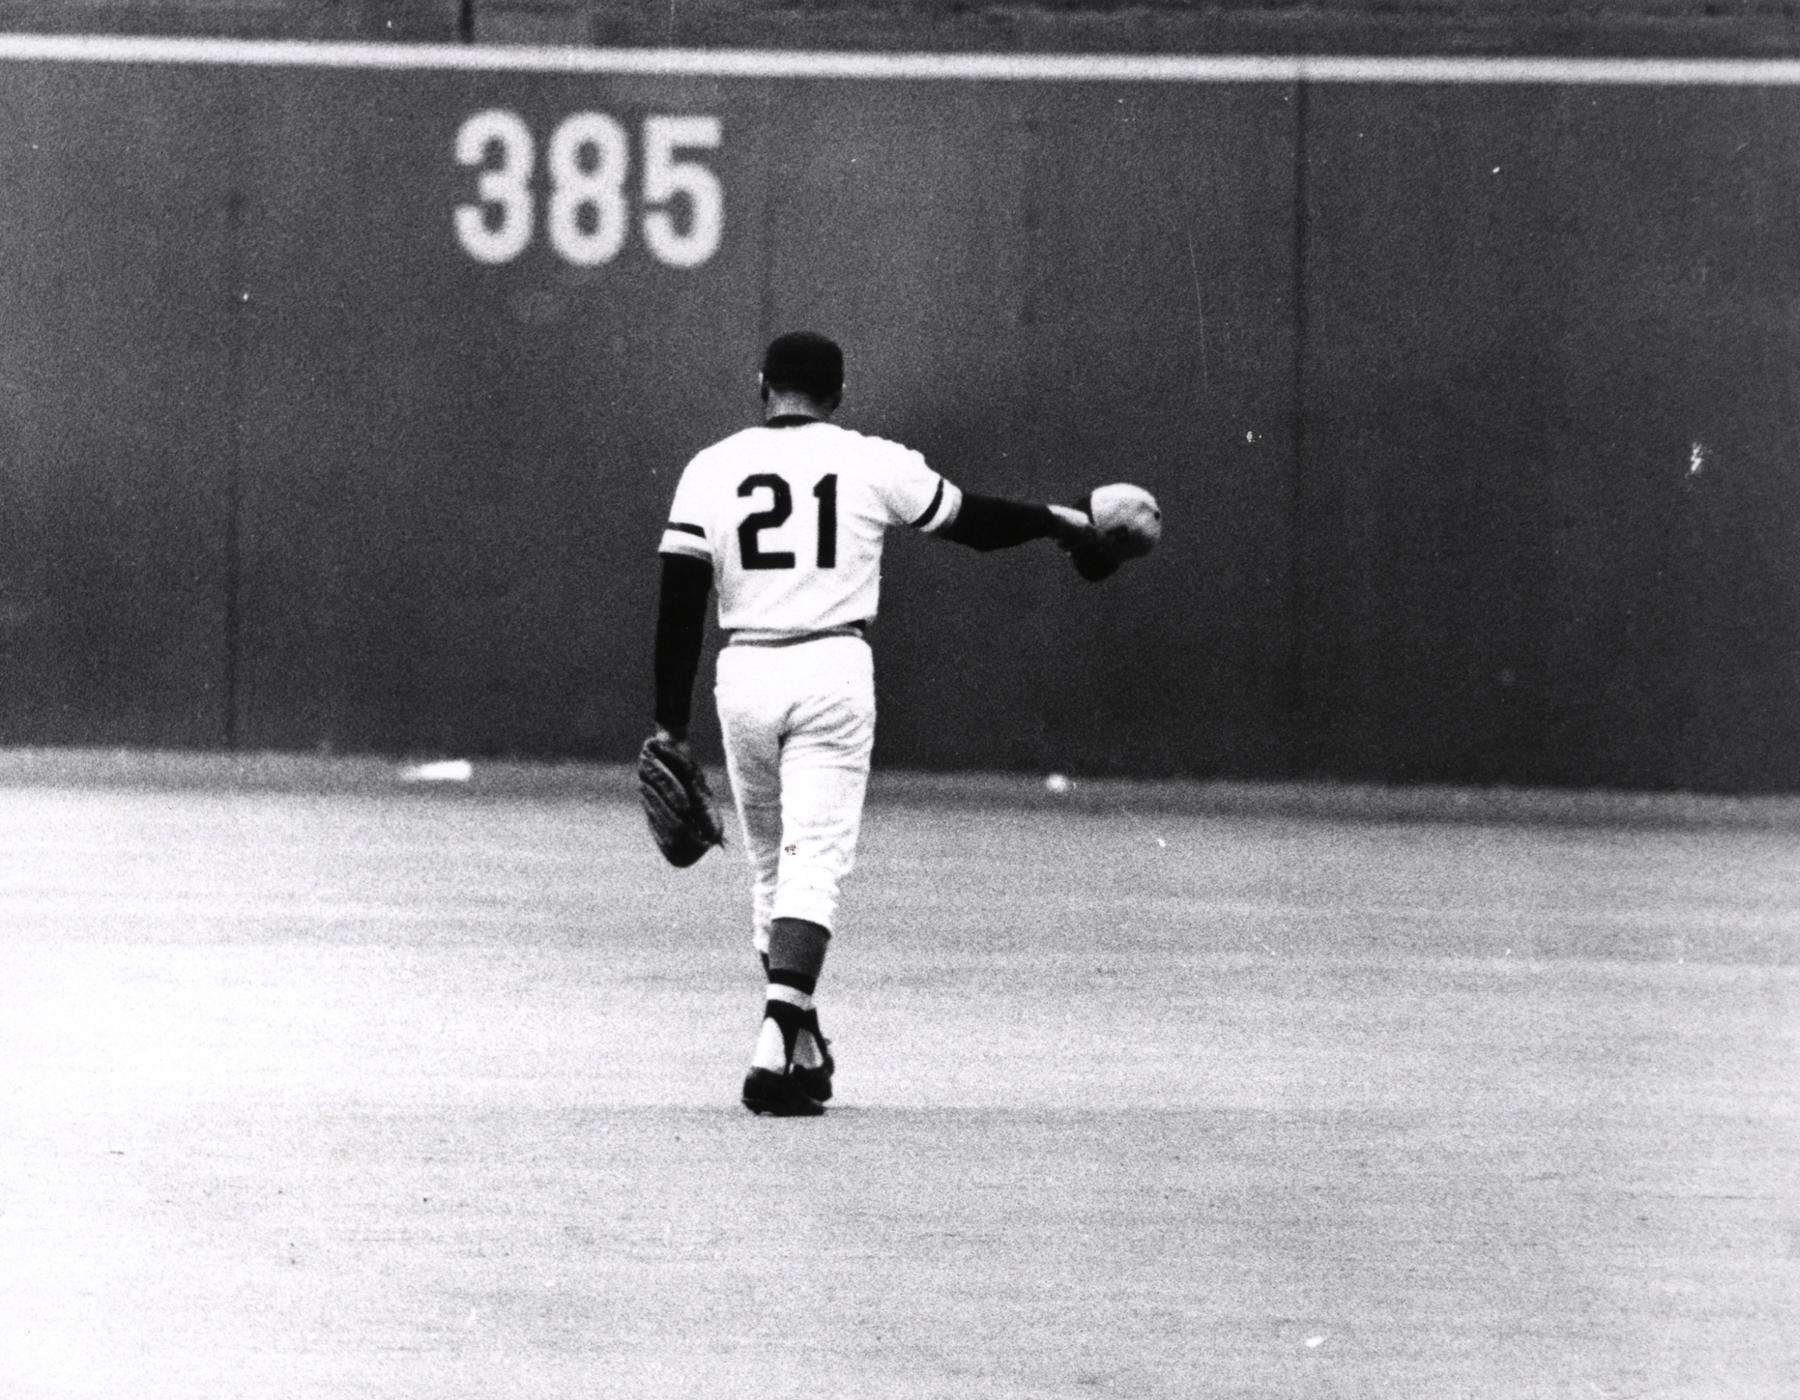 Roberto Clemente acknowledges the fans at Three Rivers Stadium while walking out to right field following his 3,000th career hit on Sept. 30, 1972. (Luis Ramos / National Baseball Hall of Fame Library)